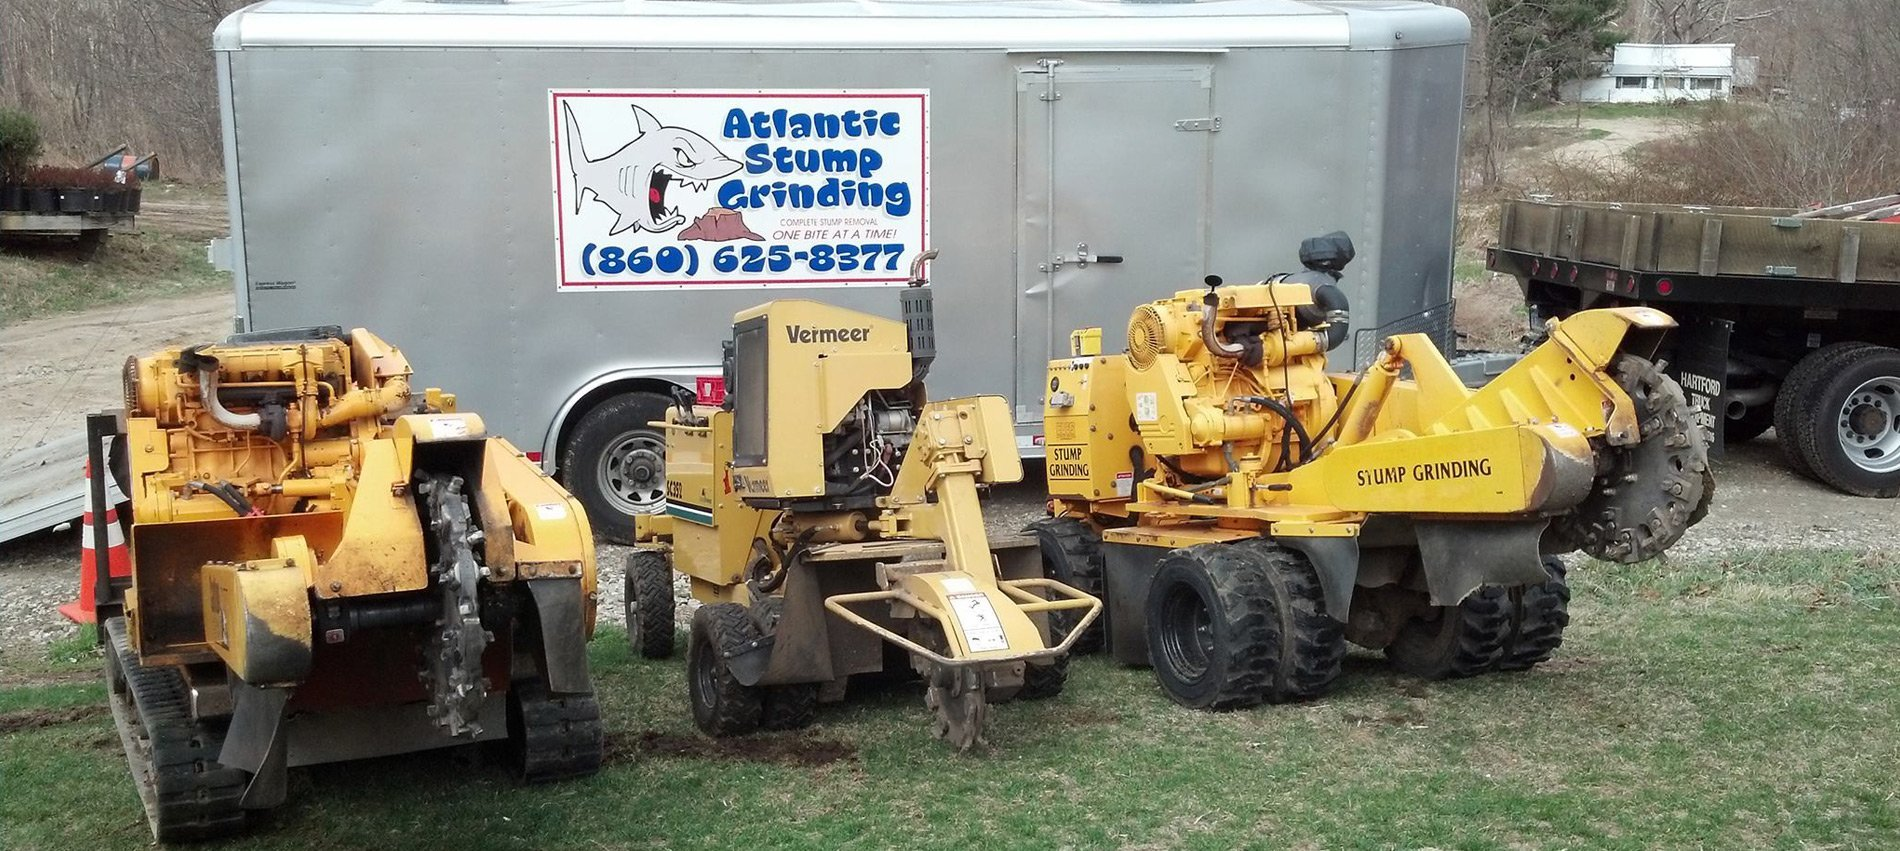 Tree stump removal equipment